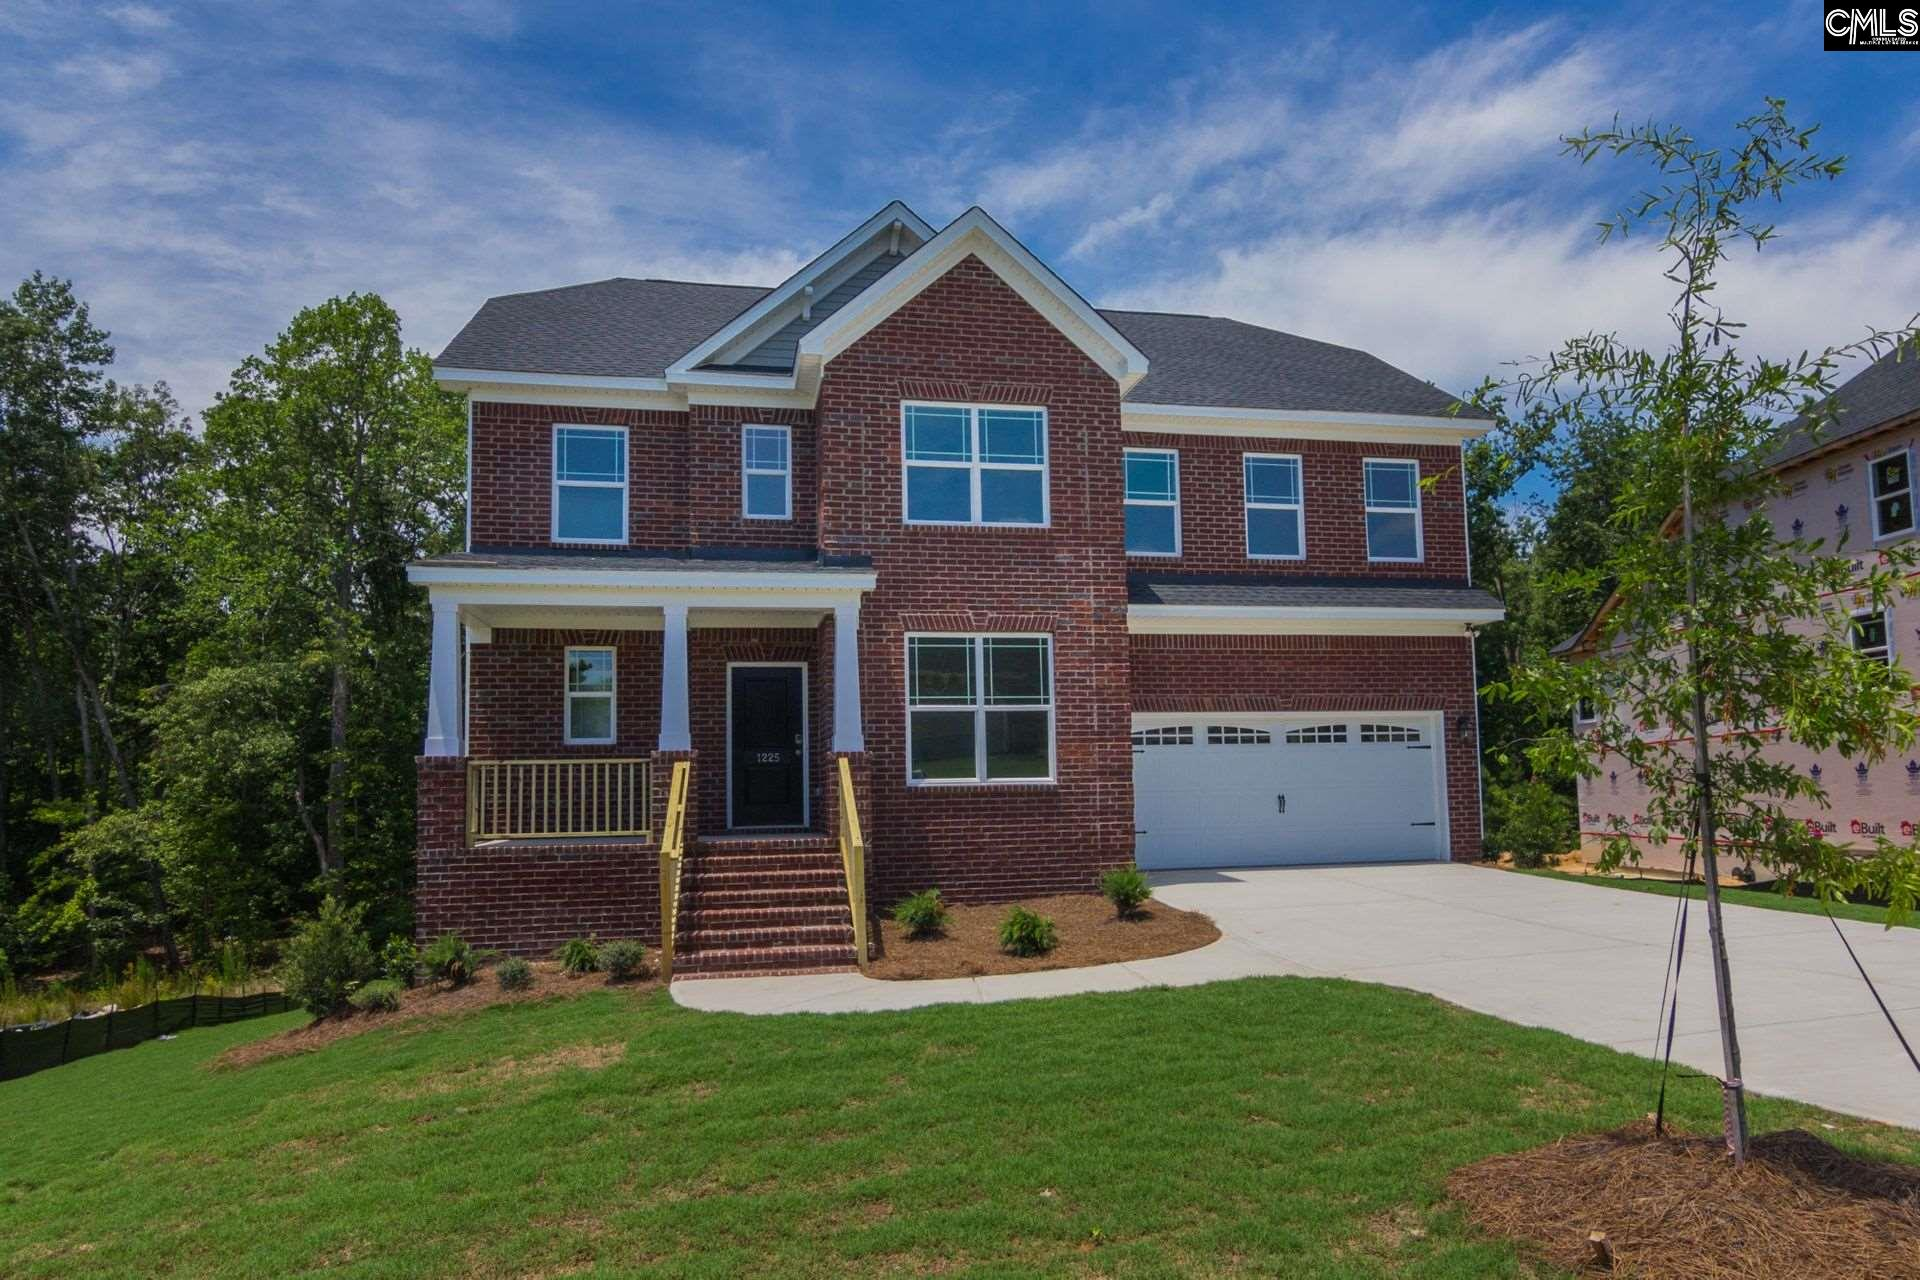 1225 Valley Estates #Ph 02 02 Blythewood, SC 29016